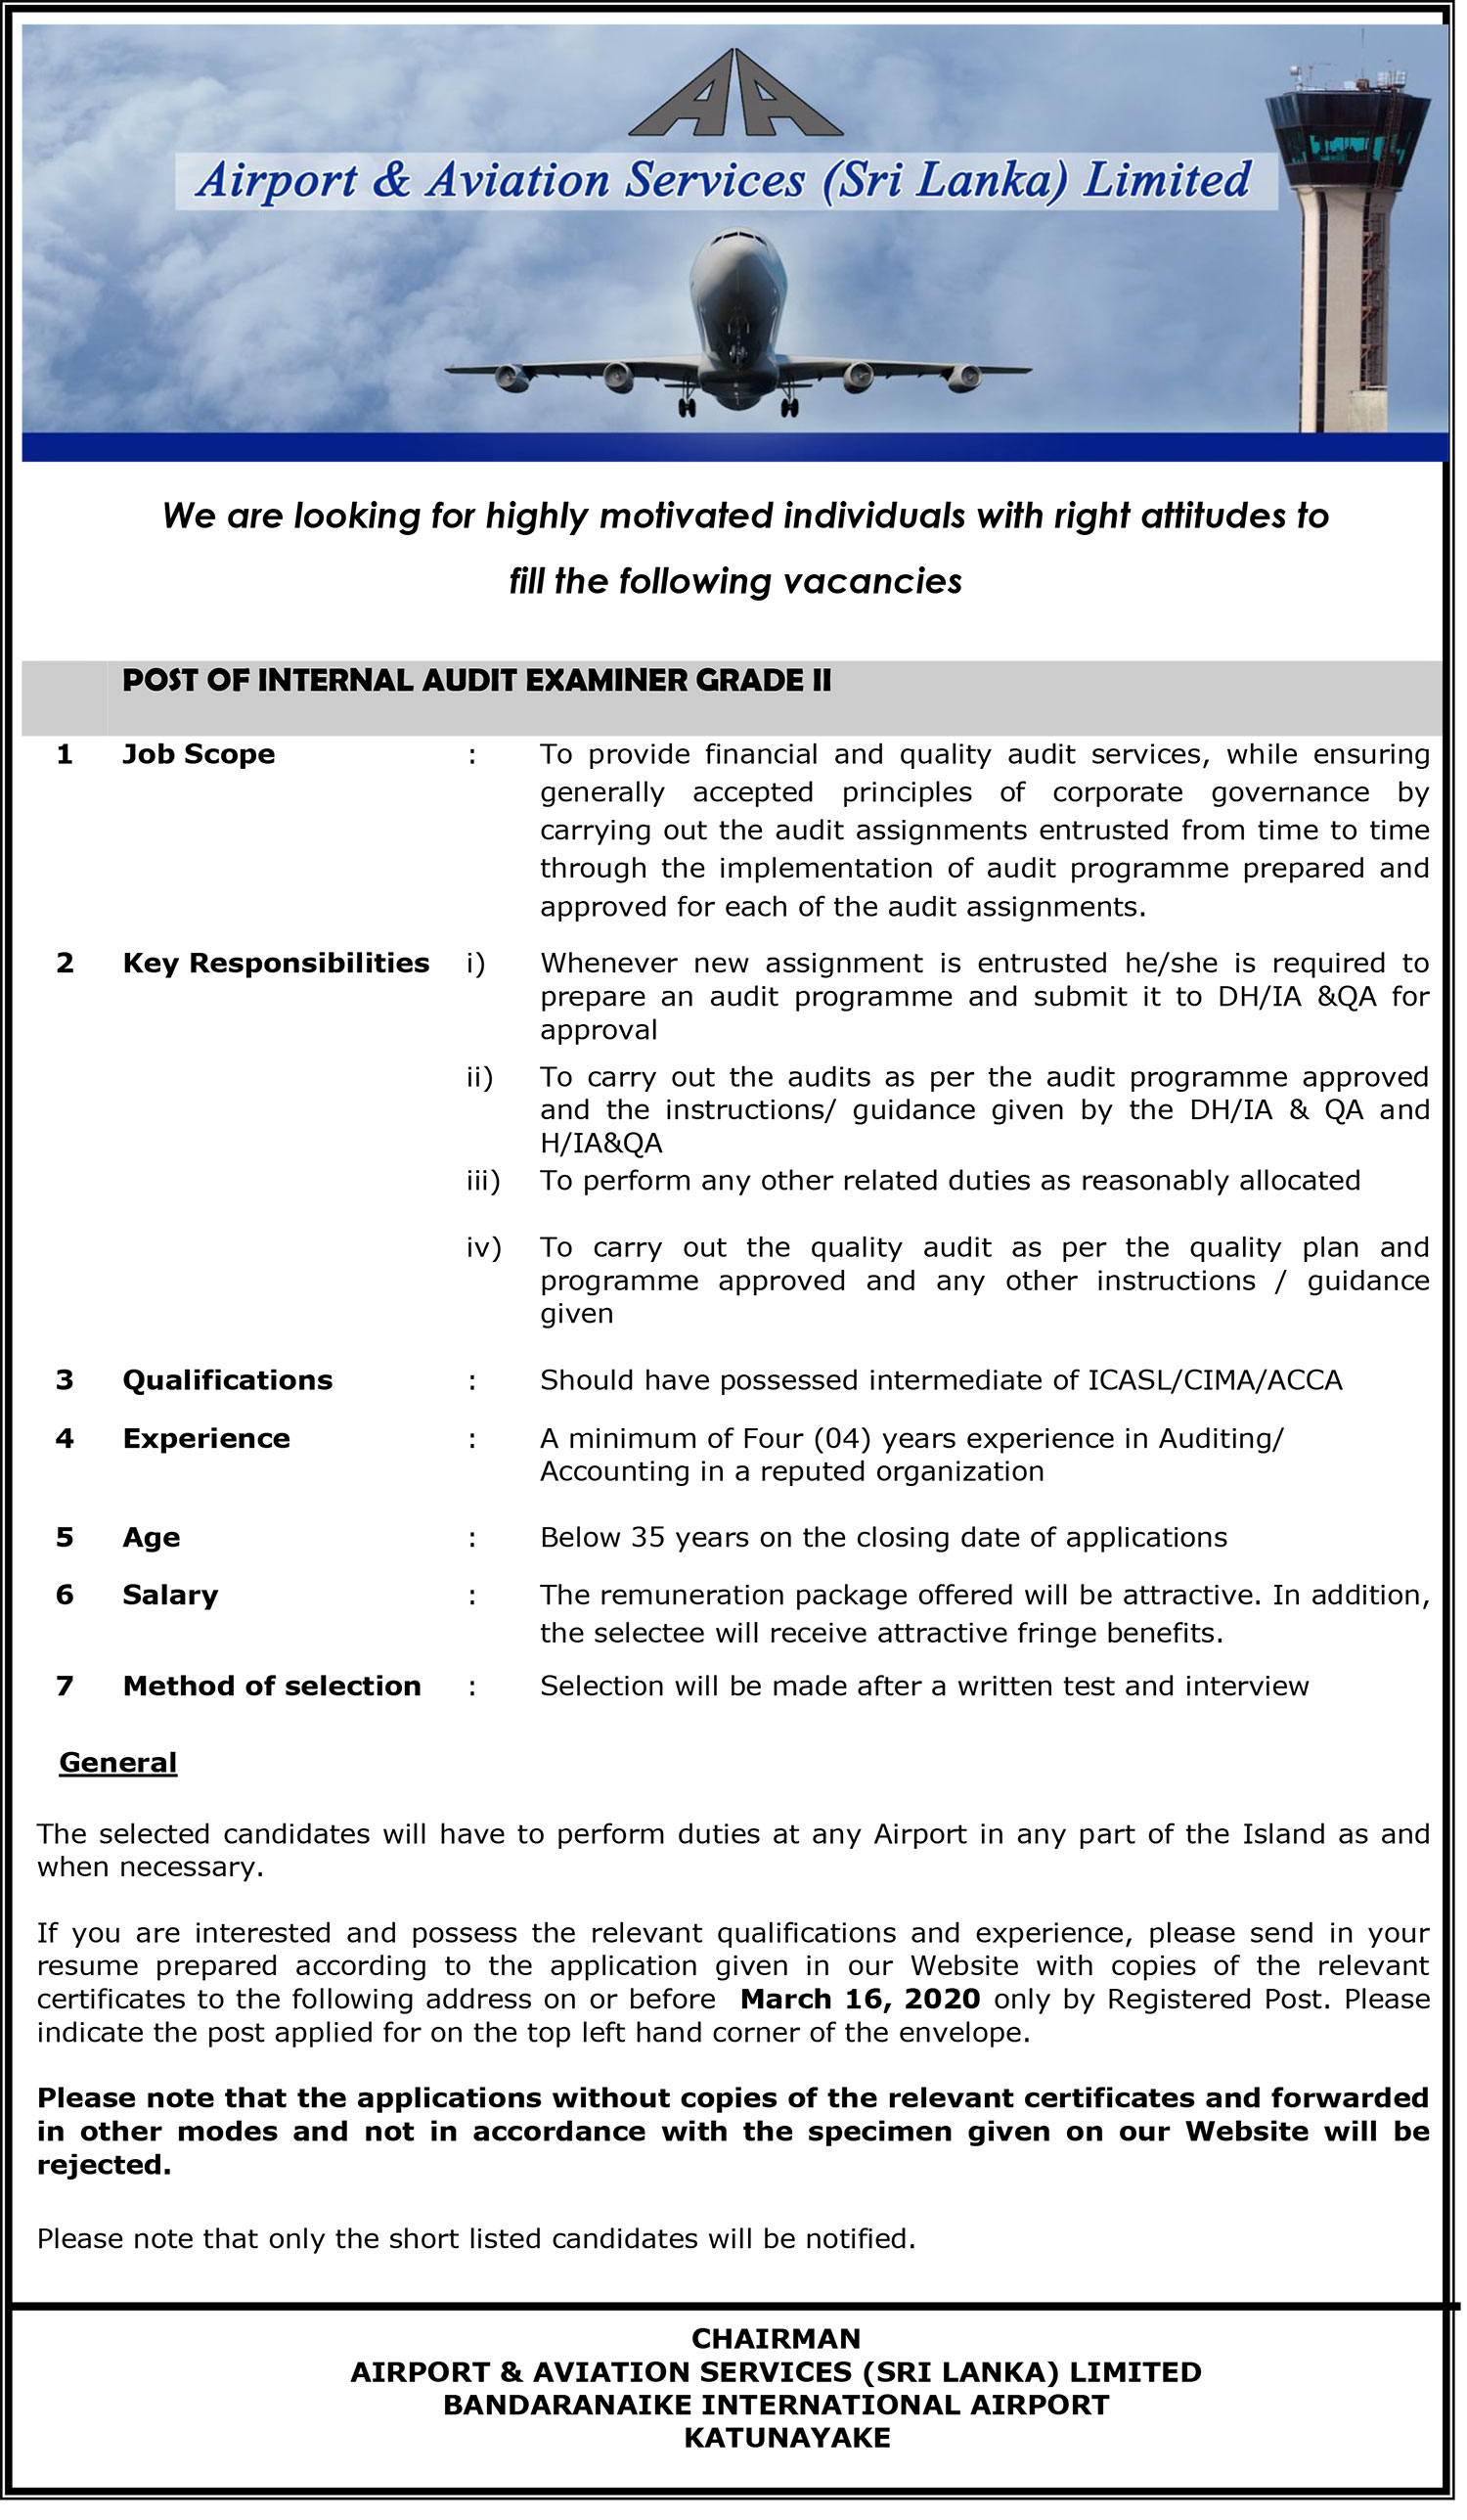 Internal Audit Examiner - Airport & Aviation Services (Sri Lanka) Ltd